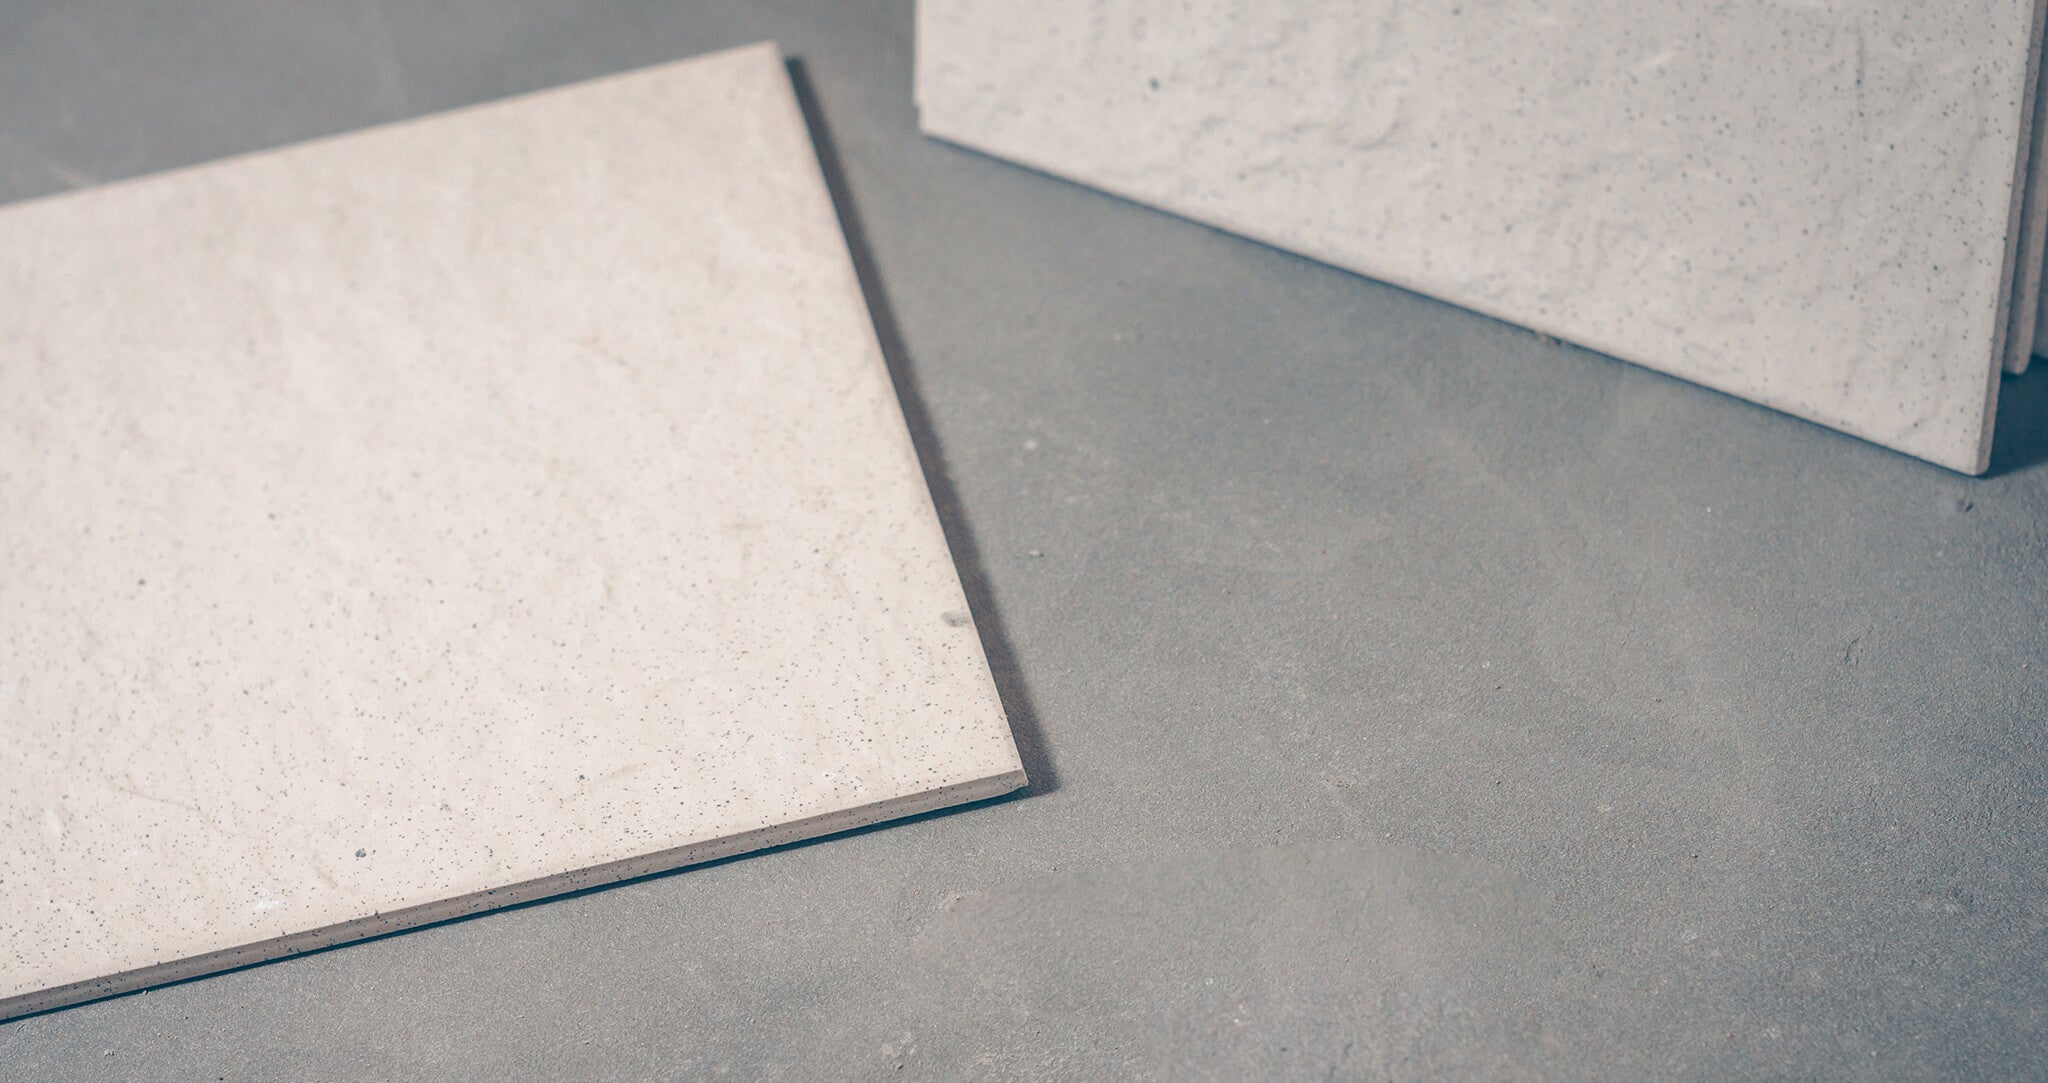 Luxury Vinyl Tile Acclimating to the Humidity in a Room